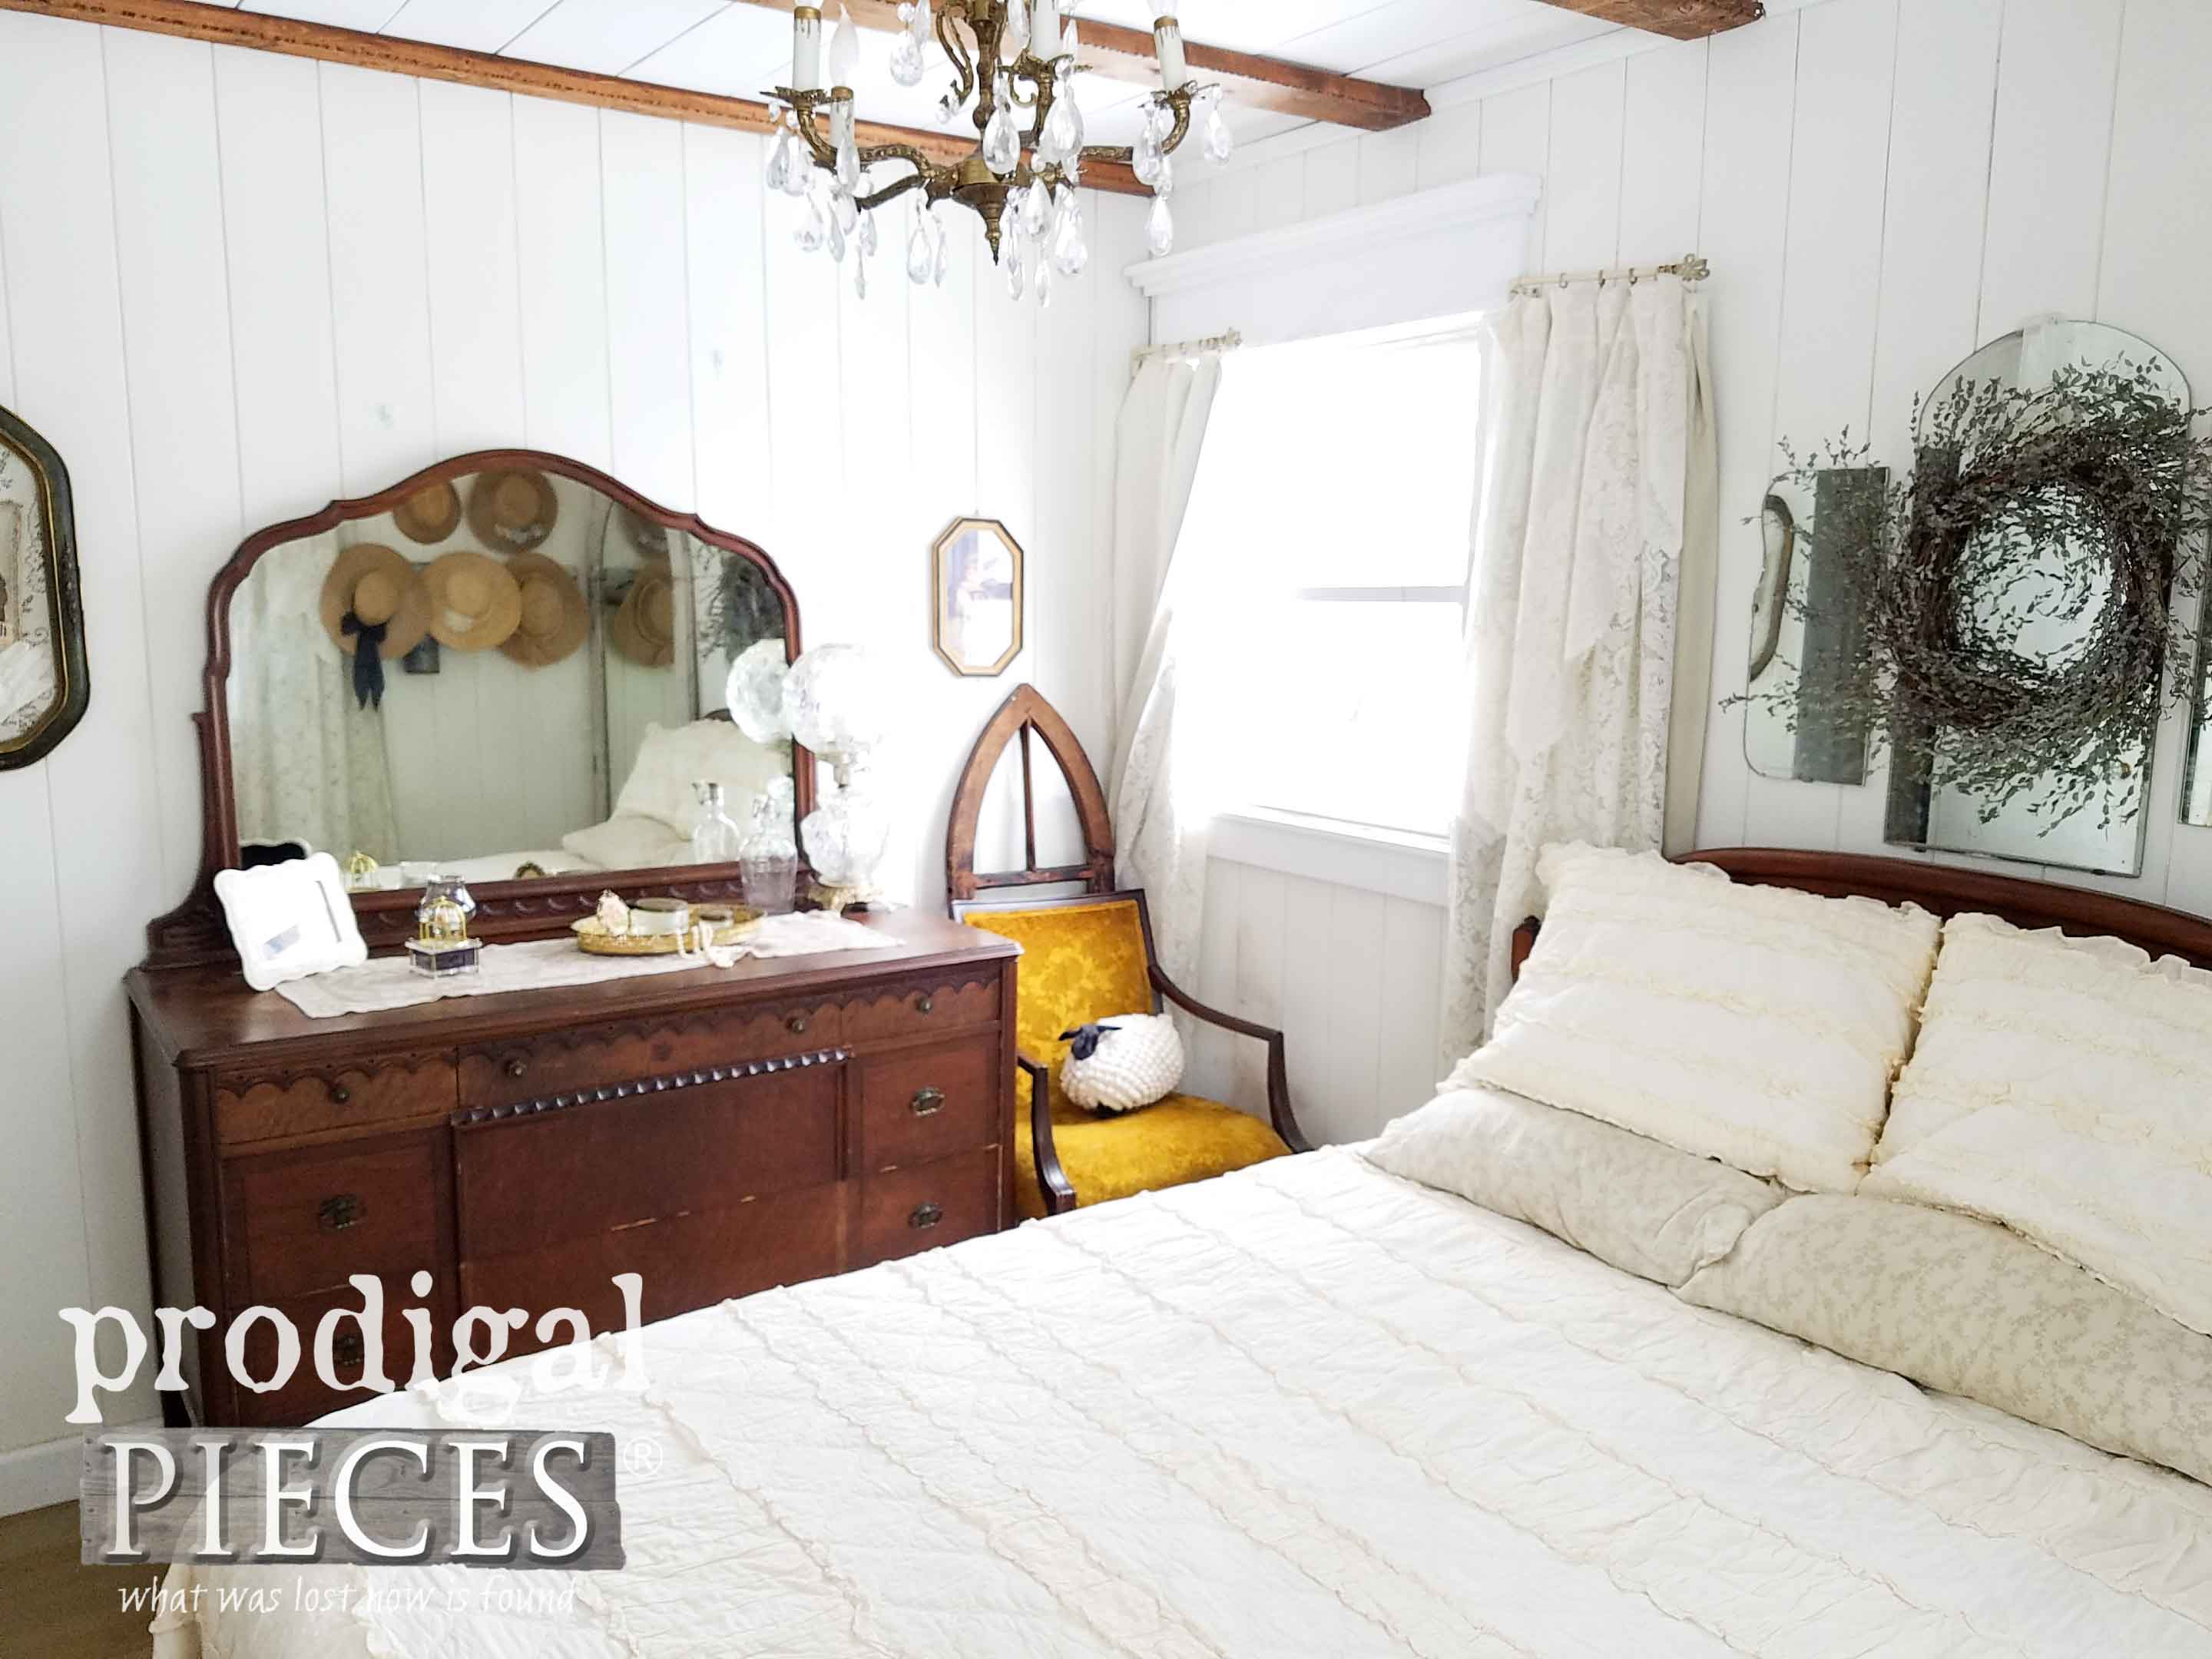 Rustic Elegance in this DIY Farmhouse Bedroom by Prodigal Pieces | prodigalpieces.com